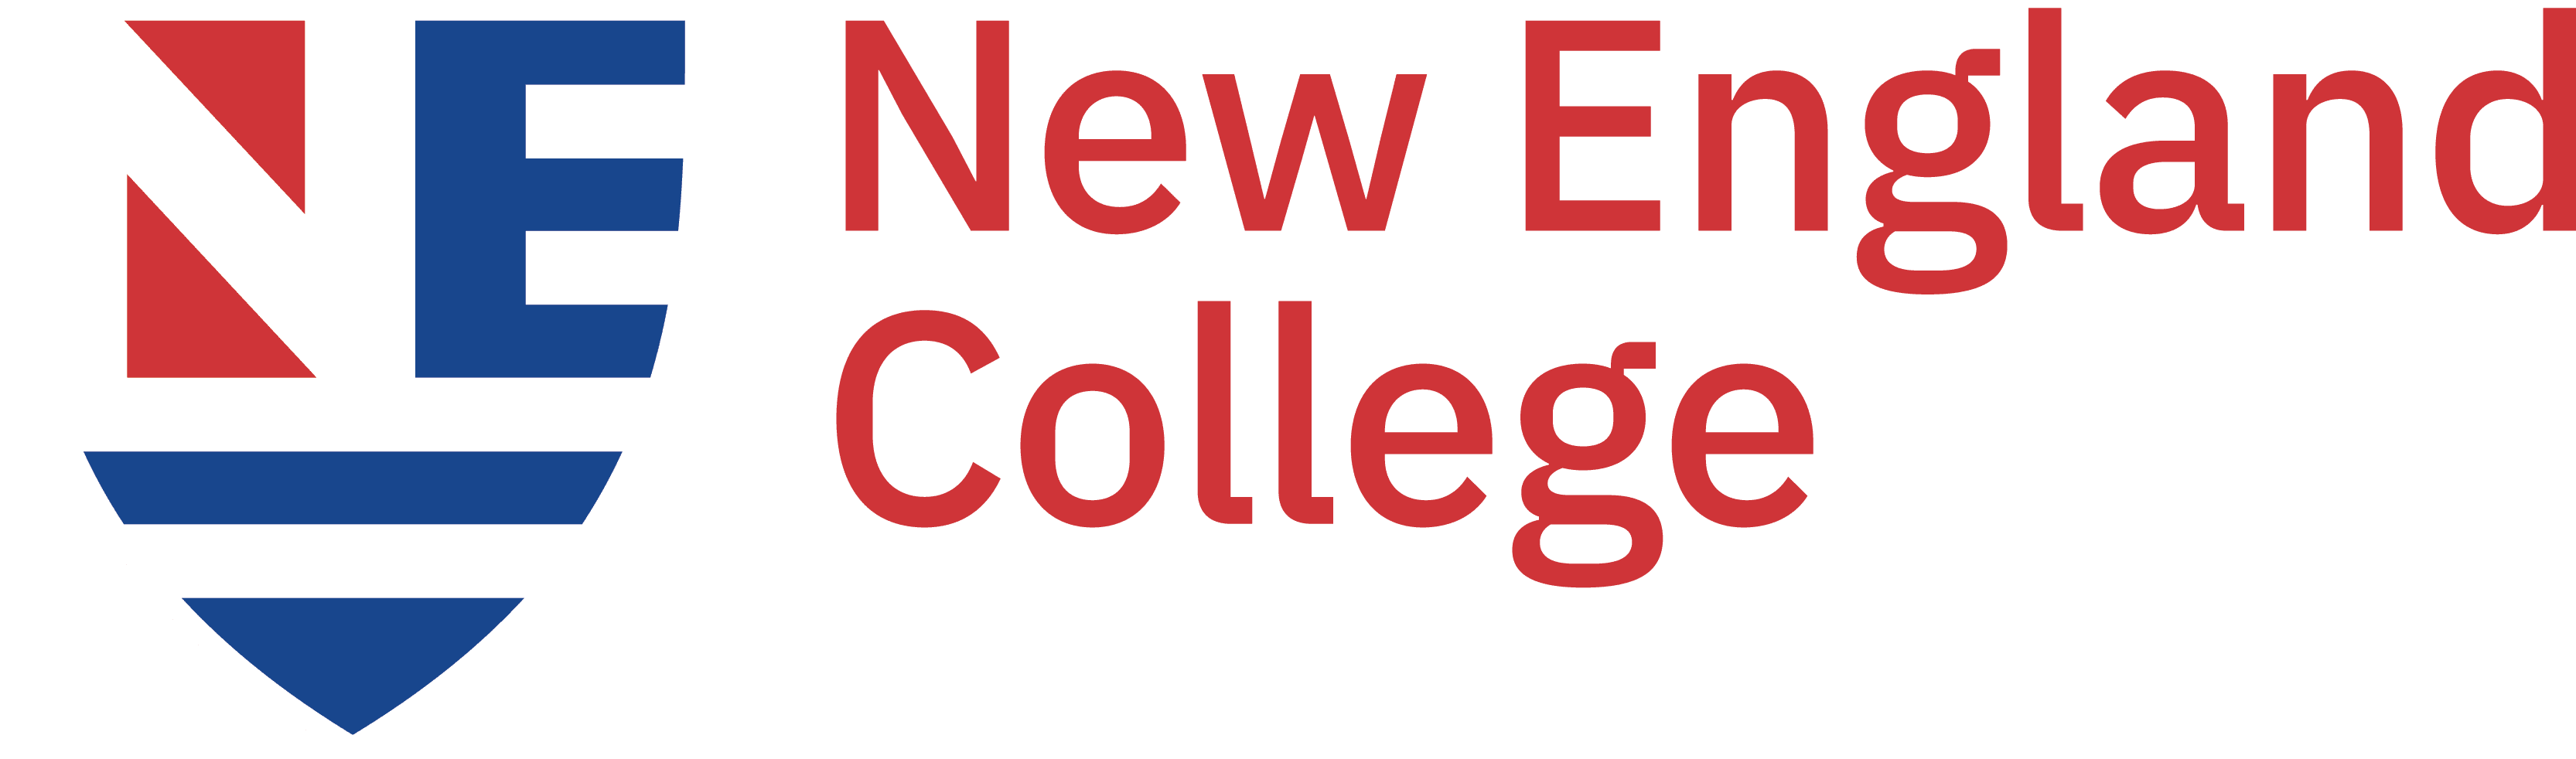 new england college